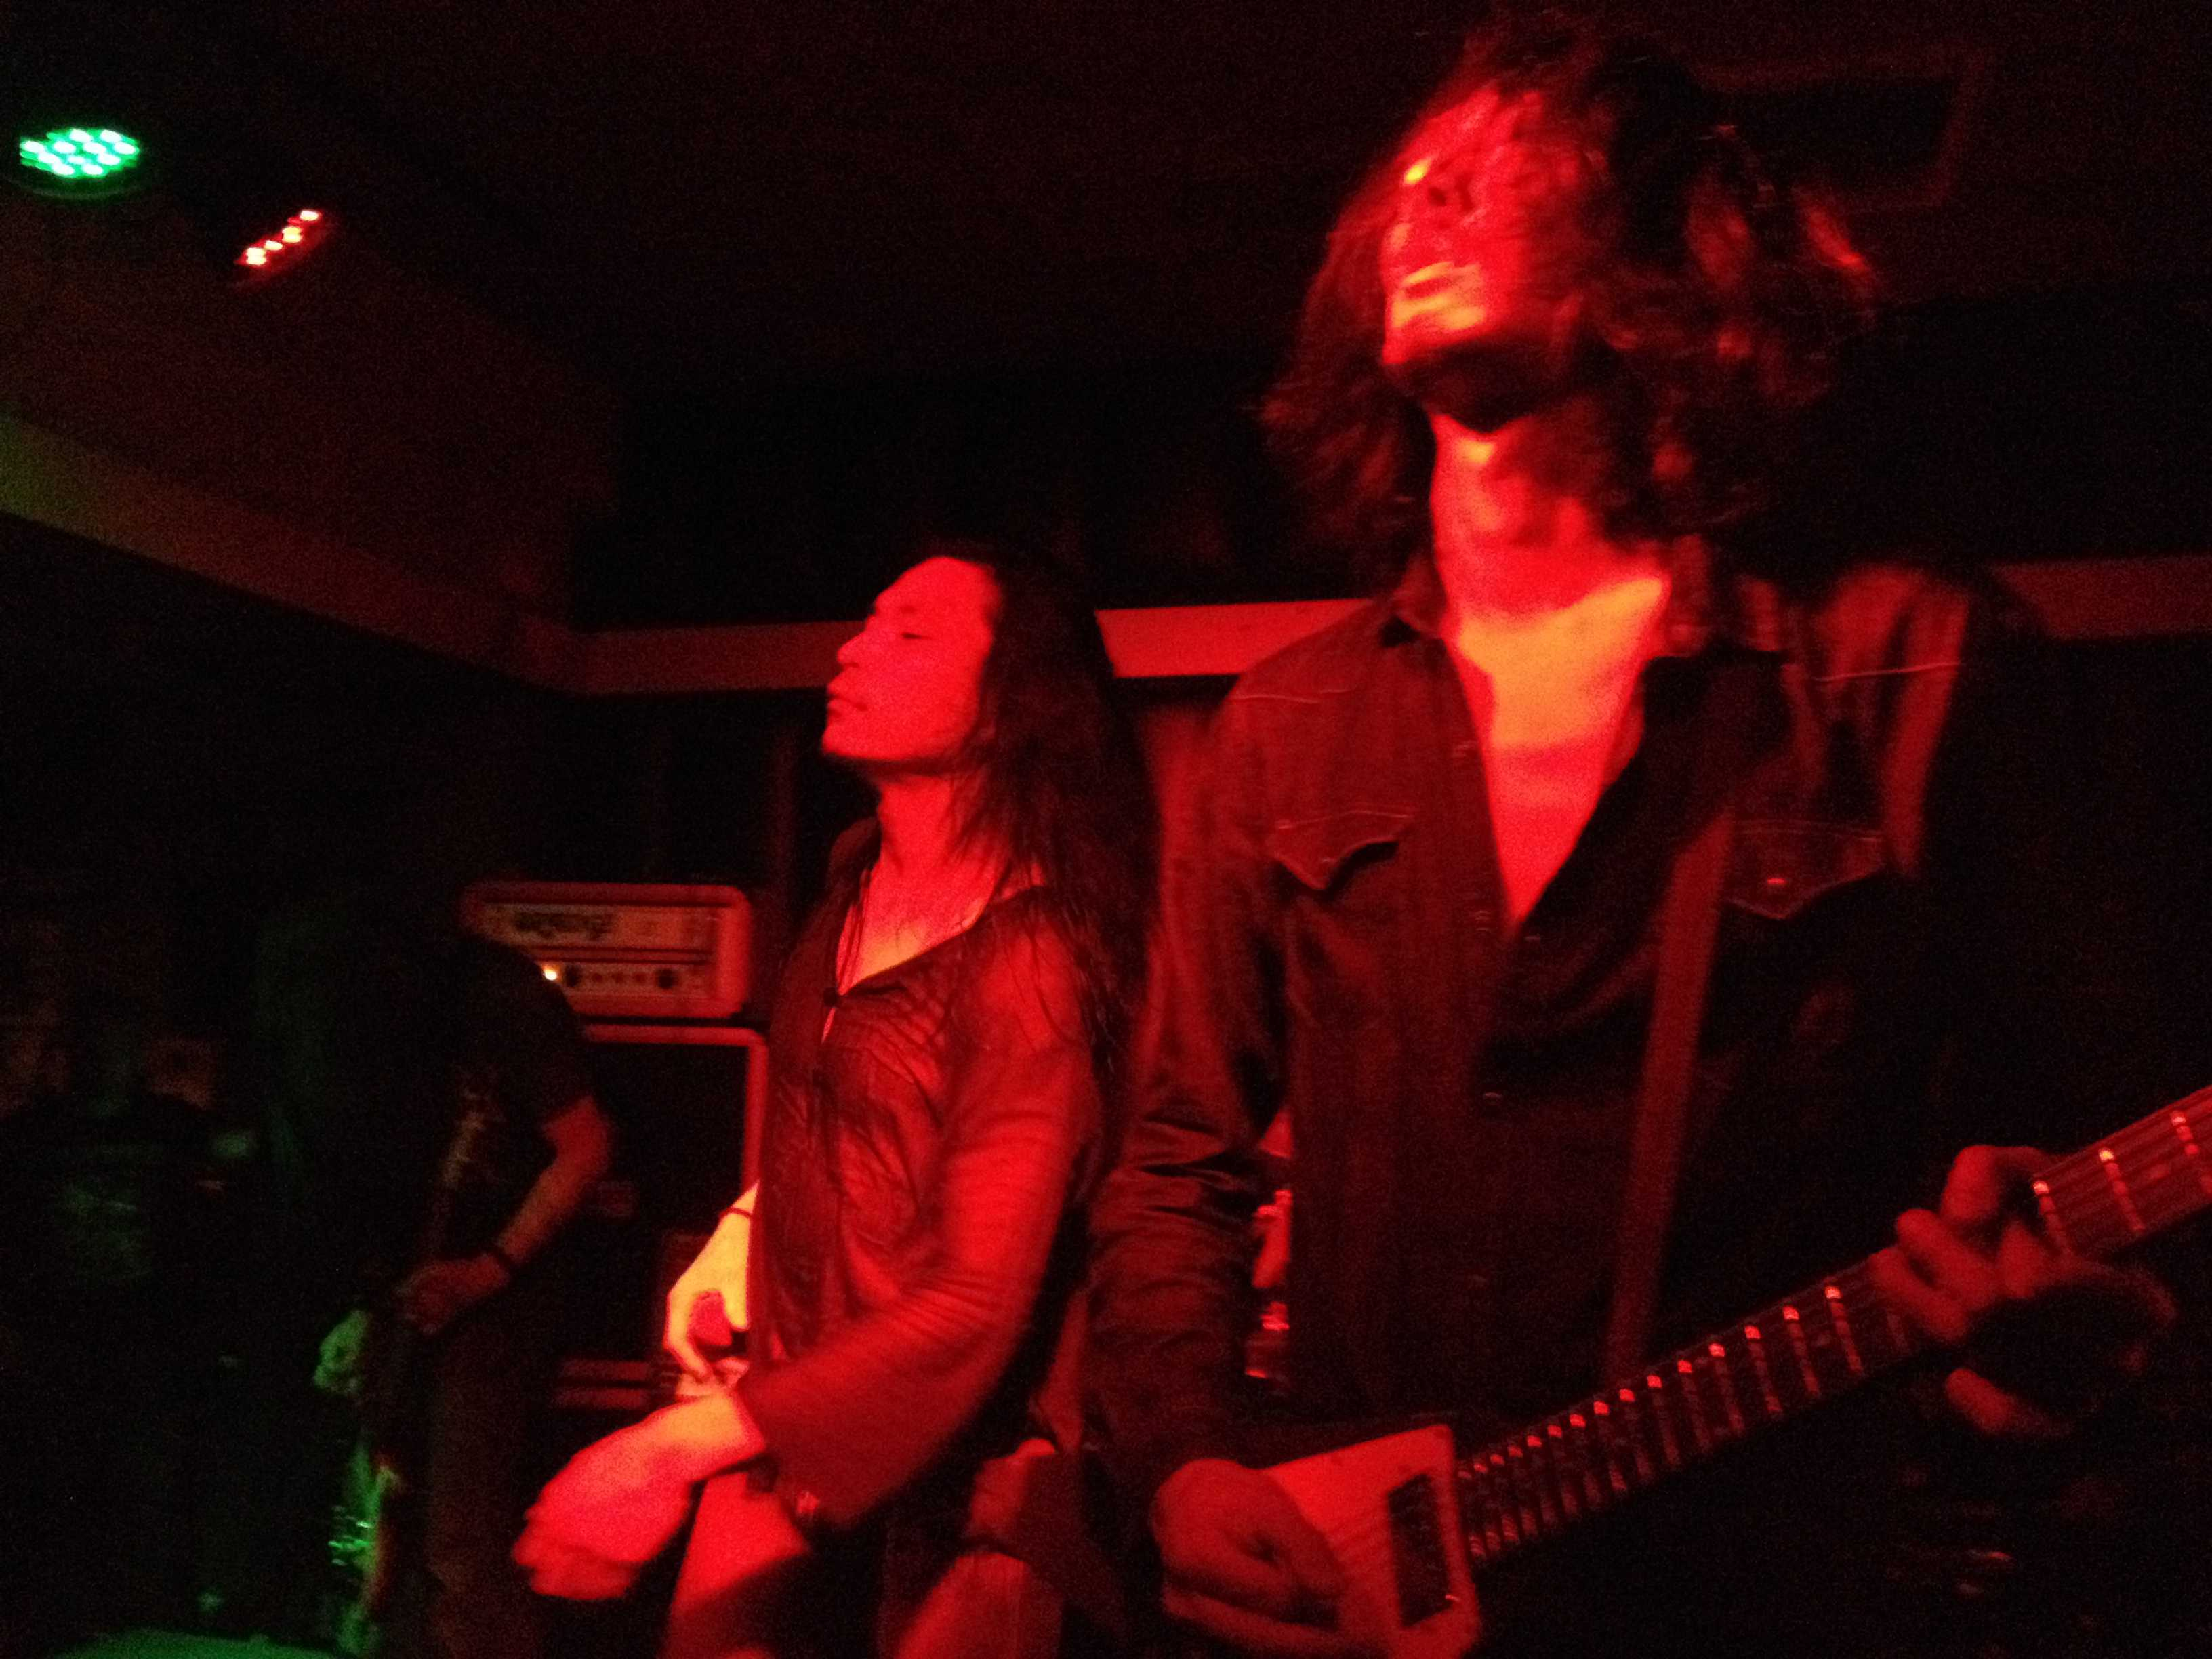 On the far left is bassist and founder Tatsu Mikami, center vocalist Hideki Fukasawa, right lead guitarist Ikuma Kawabe. From their Thanksgiving show at San Diego's Soda Bar. Jennifer Ovalle, City Times.